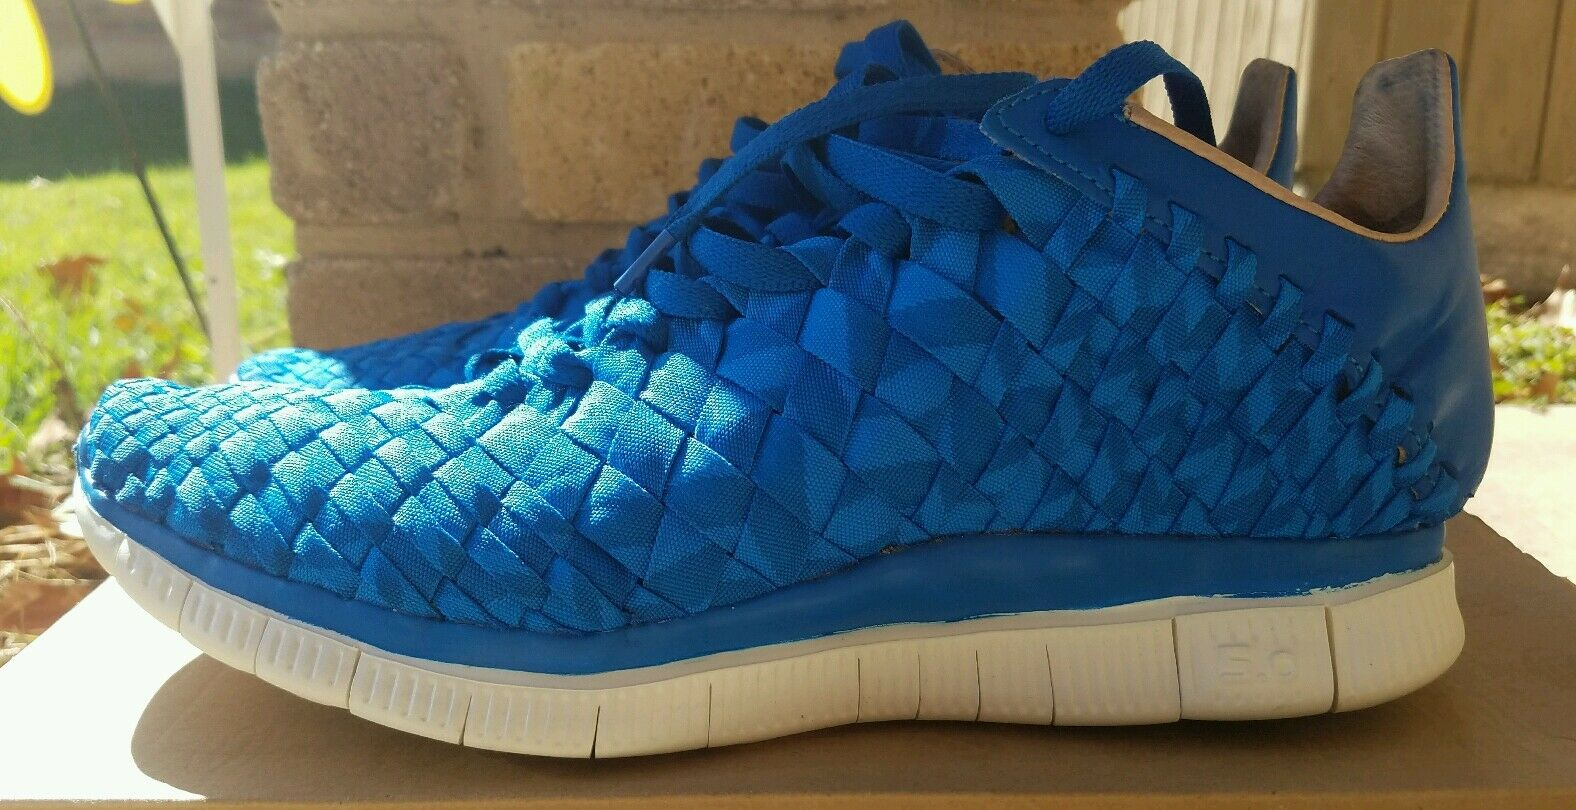 VNDS Nike Free Inneva Woven SP Photo bluee Size 9.5